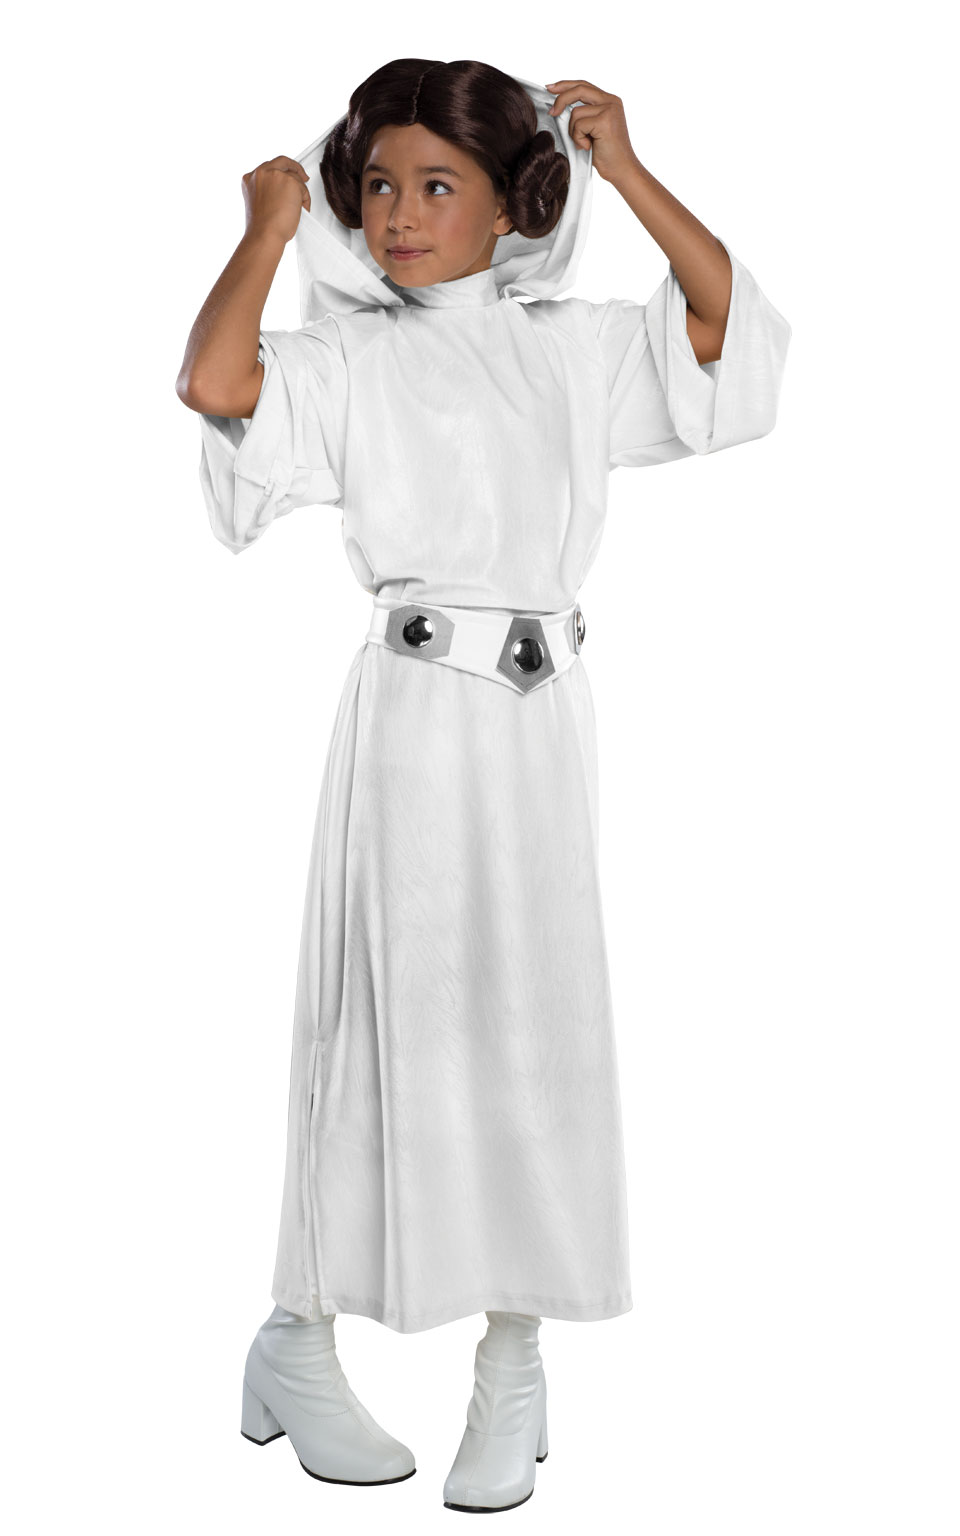 Childs Princess Leia Costume